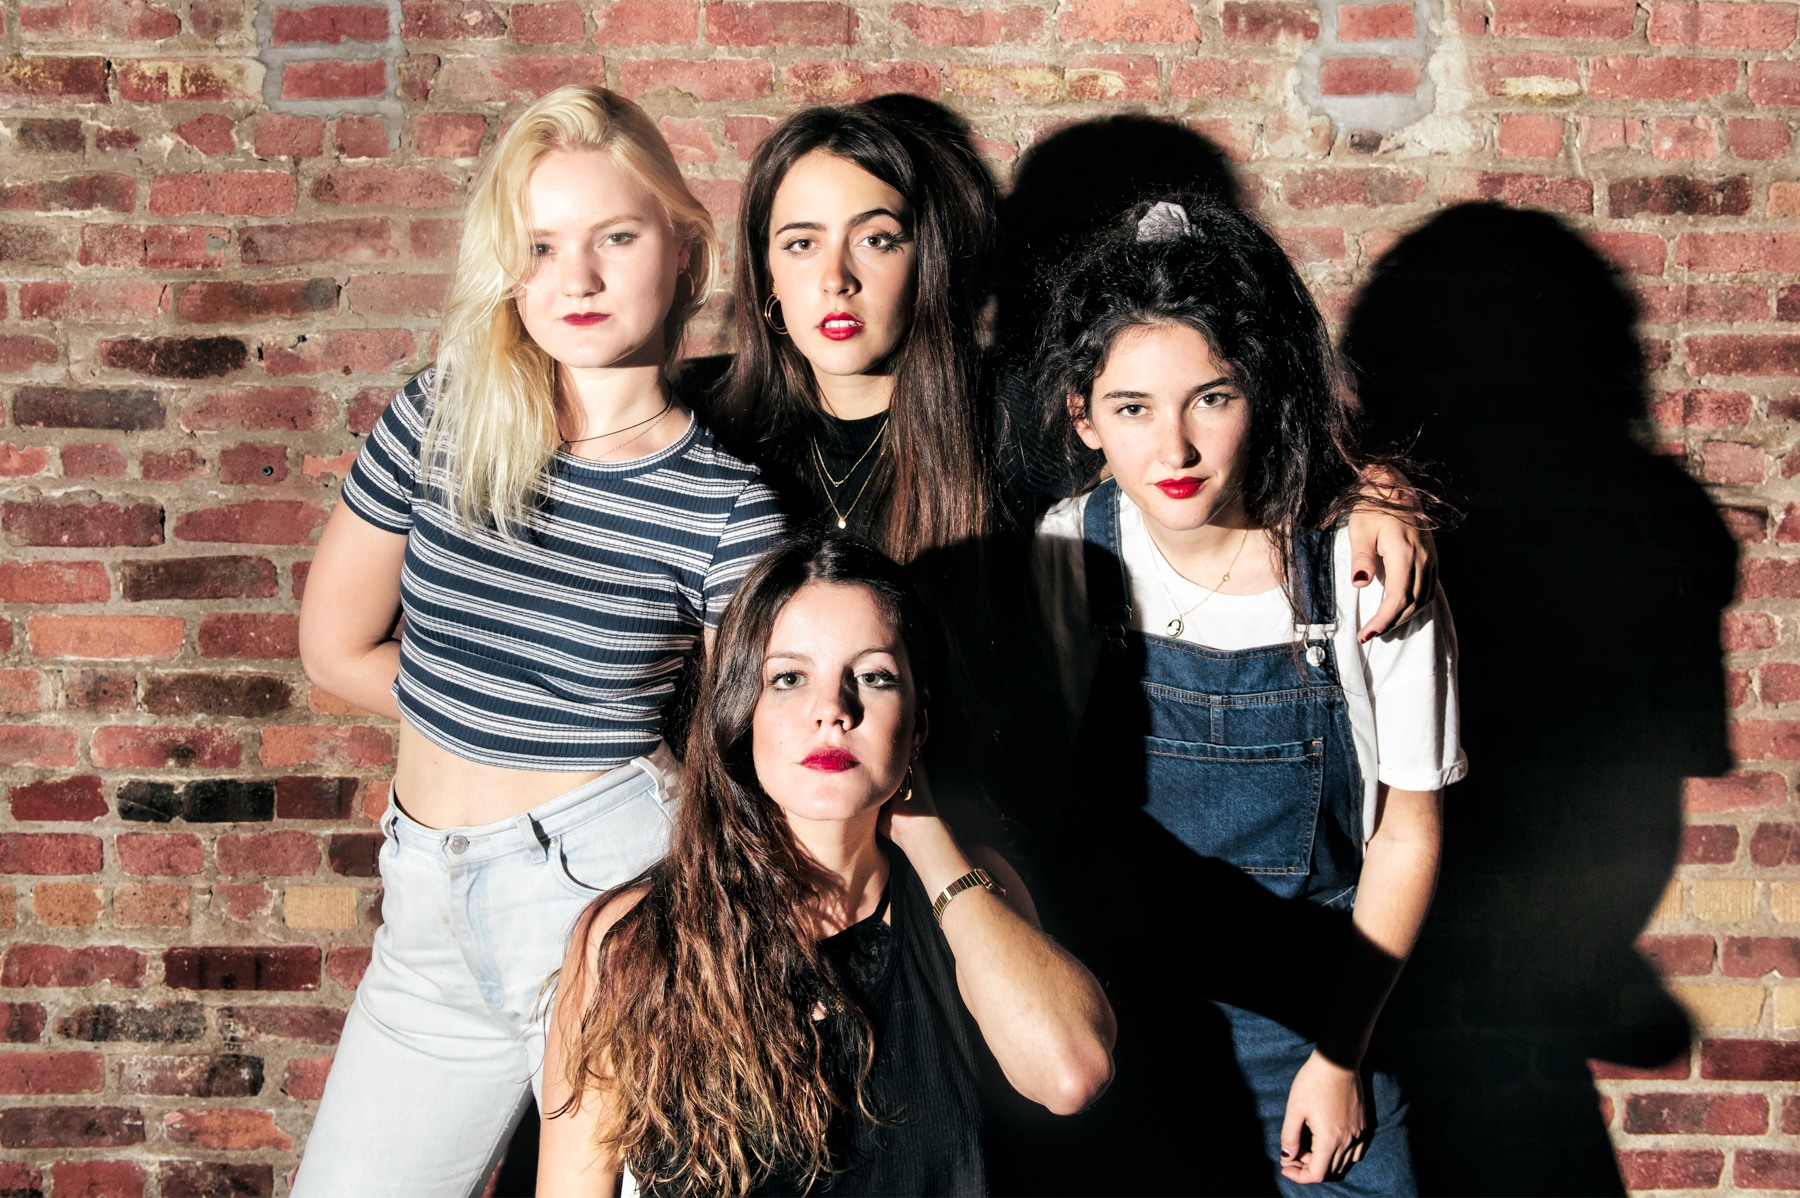 Hinds' Amber Grimbergen, Ana Perrote, Ade Martín, and Carlotta Cosials photographed by Chad Kamenshine